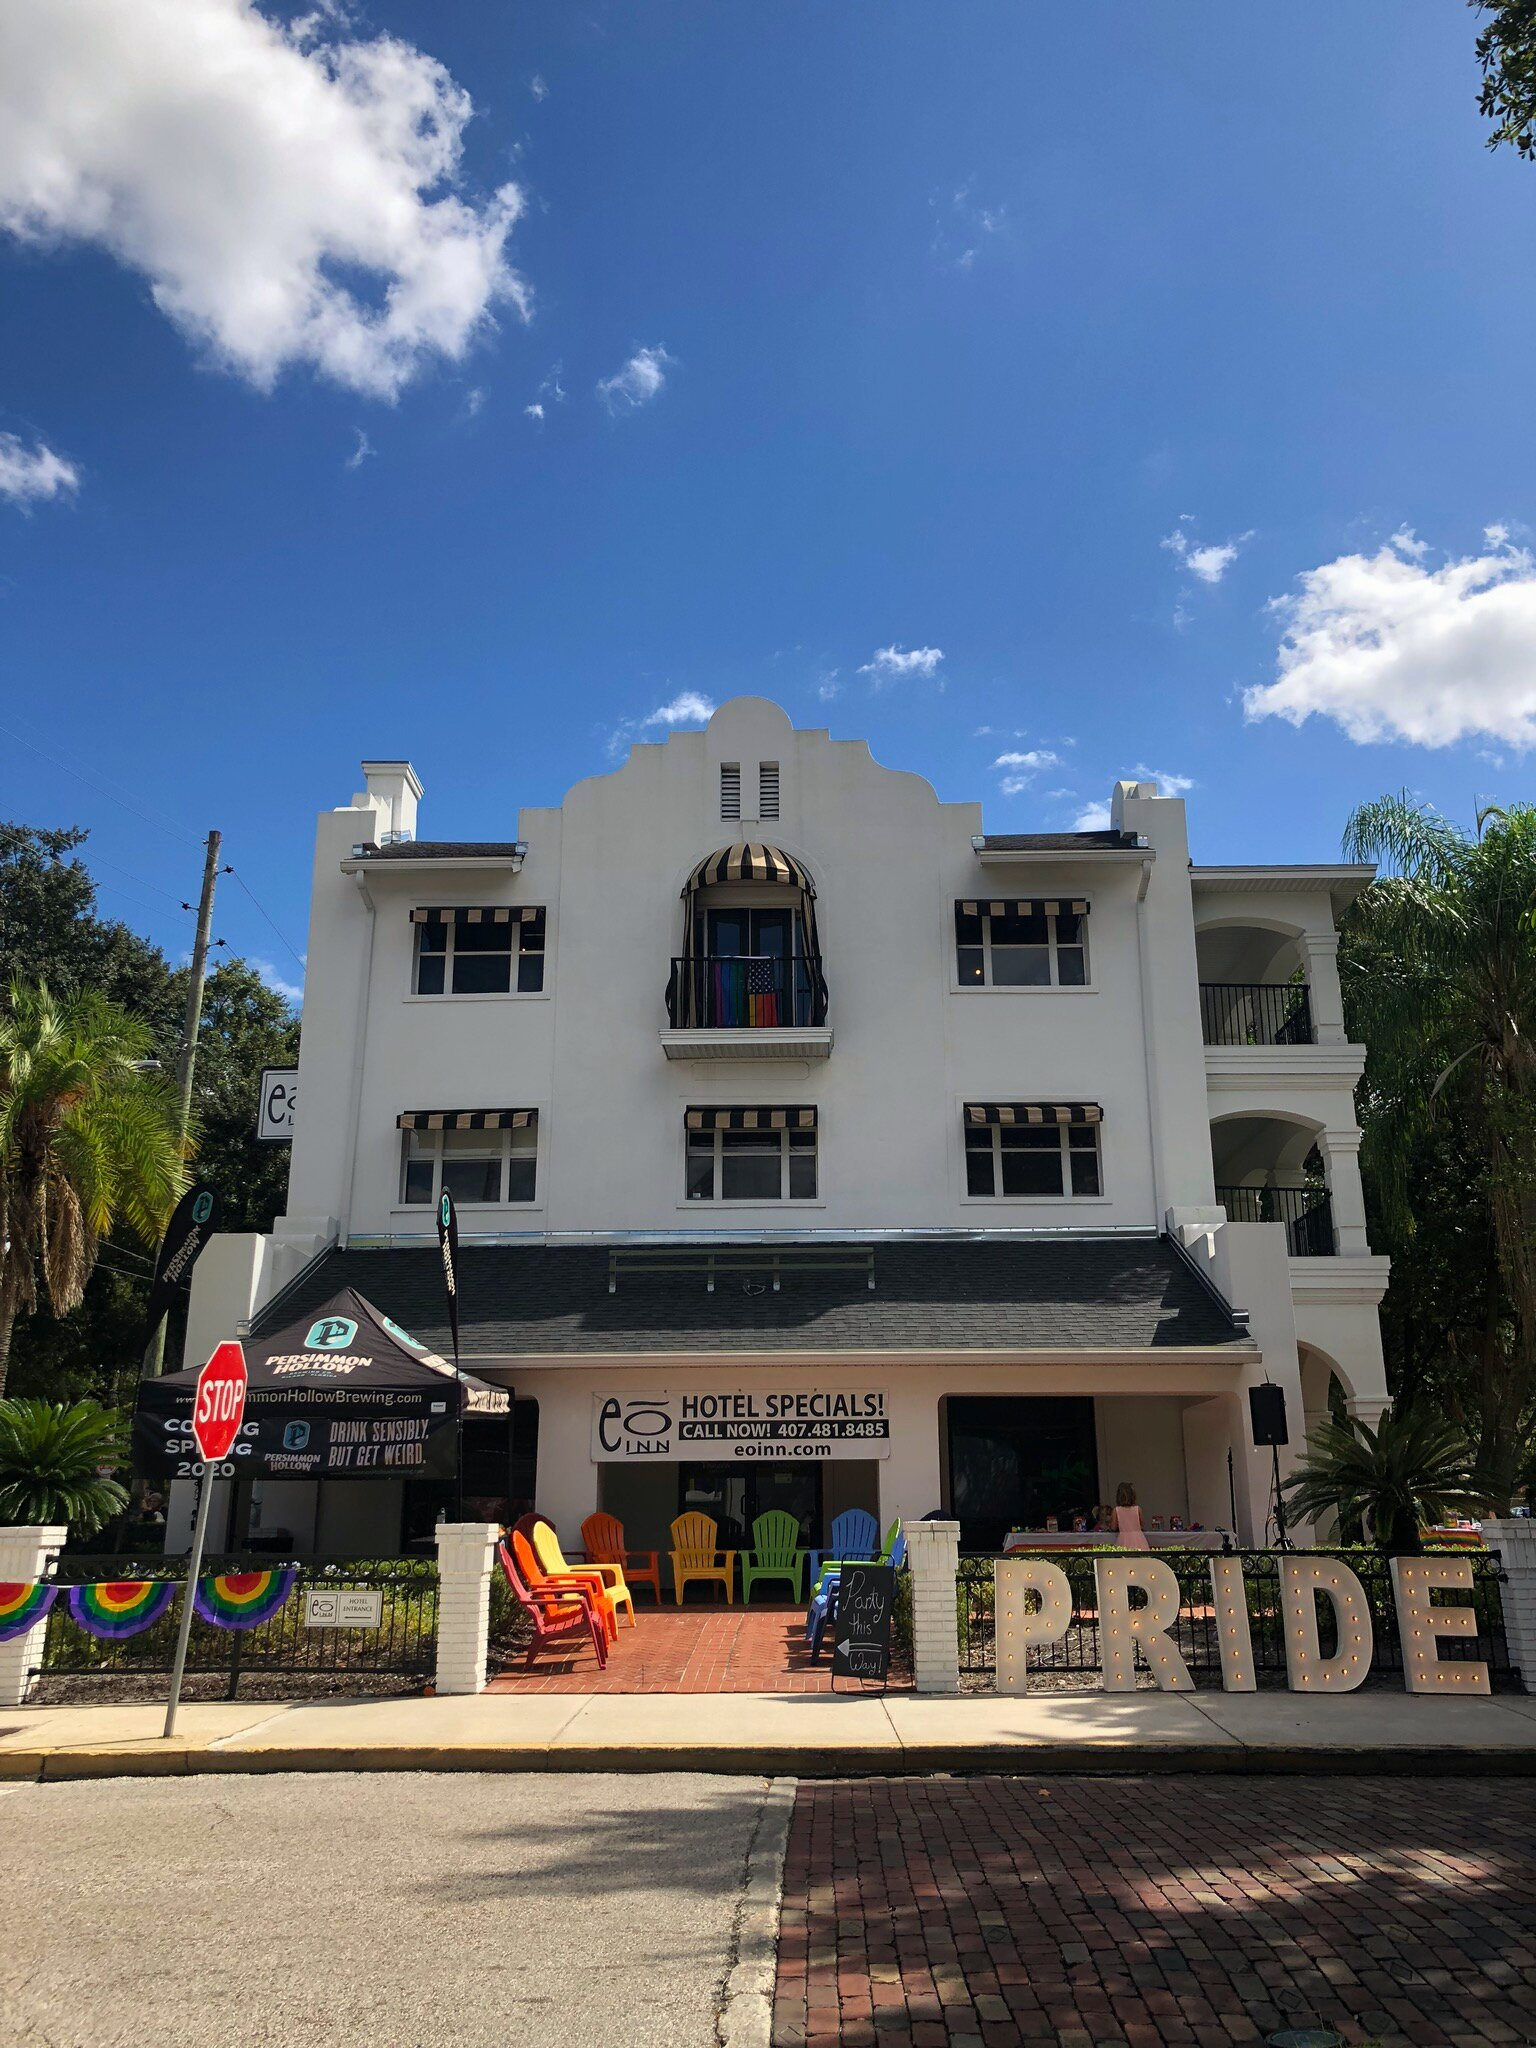 Pictured: The front of the EO Inn at the Come Out With Pride Orlando Festival on October 12th.